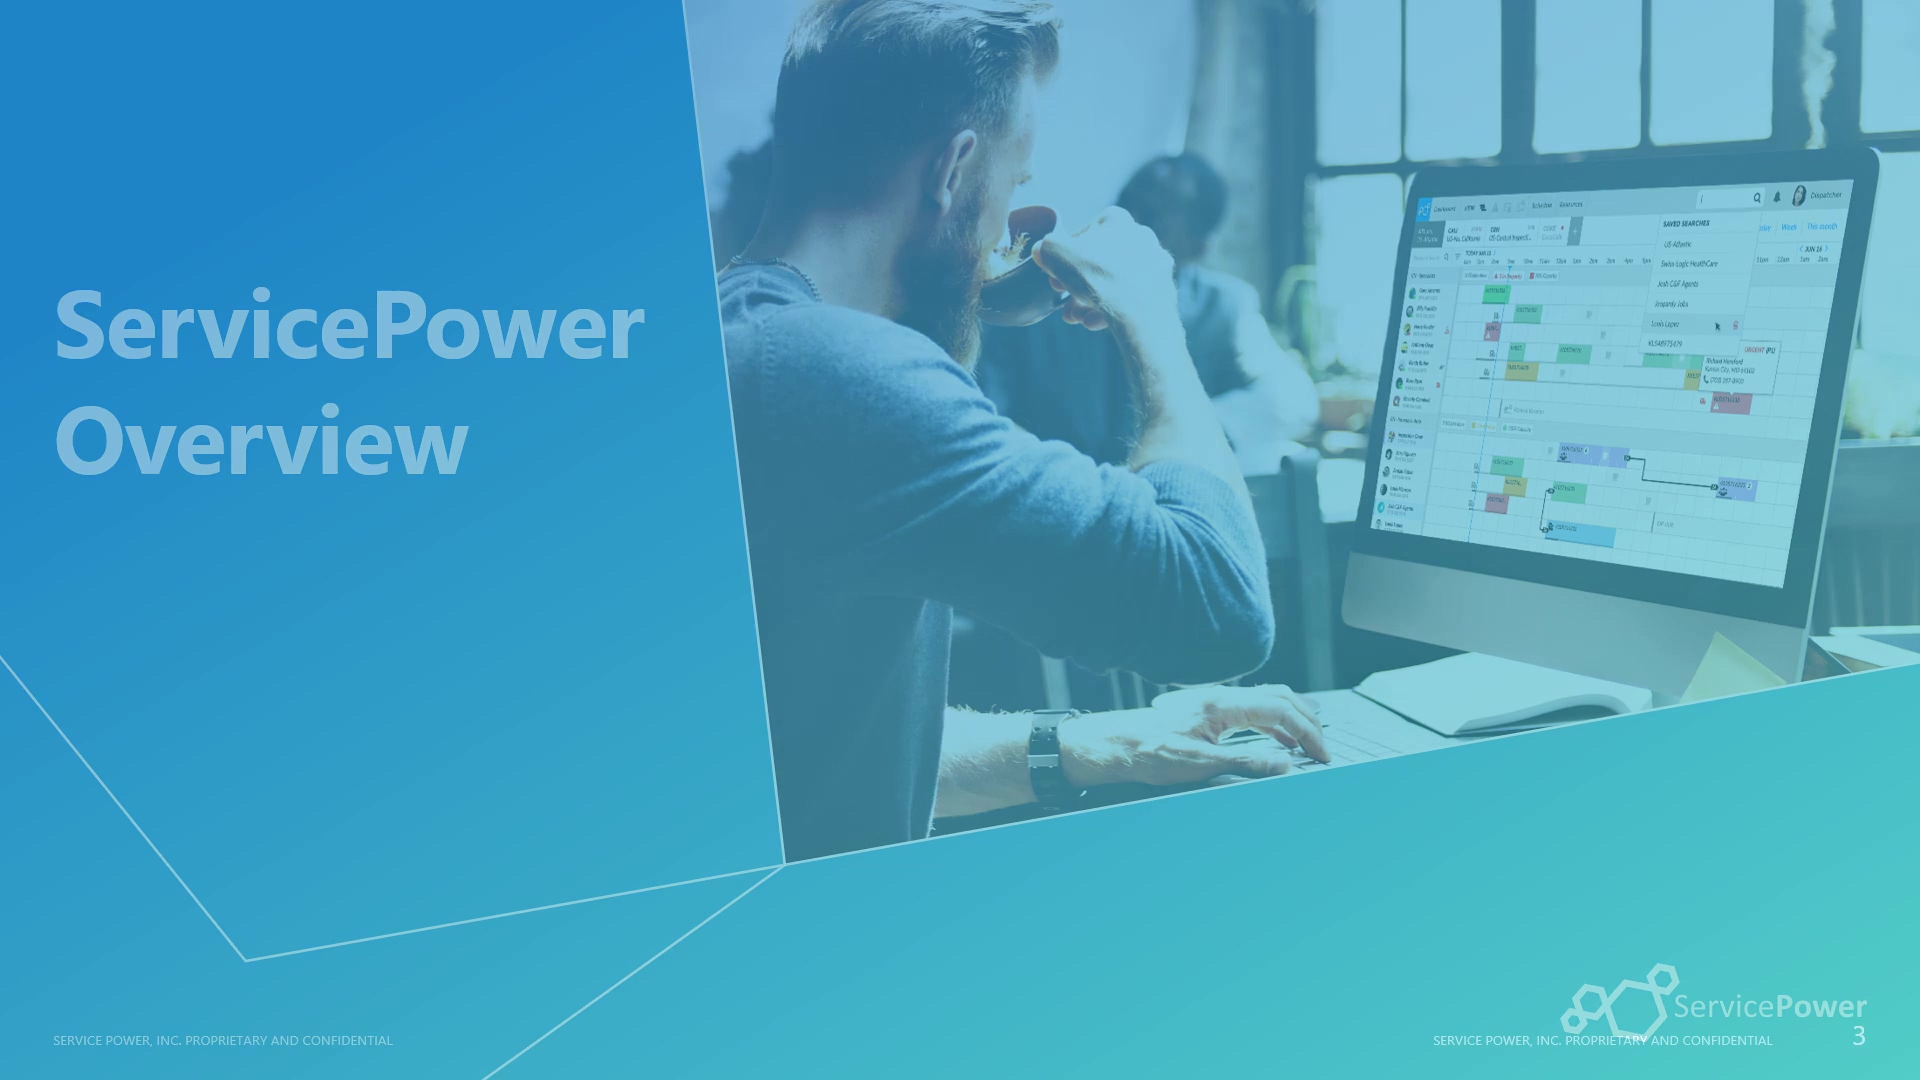 ServicePower Overview